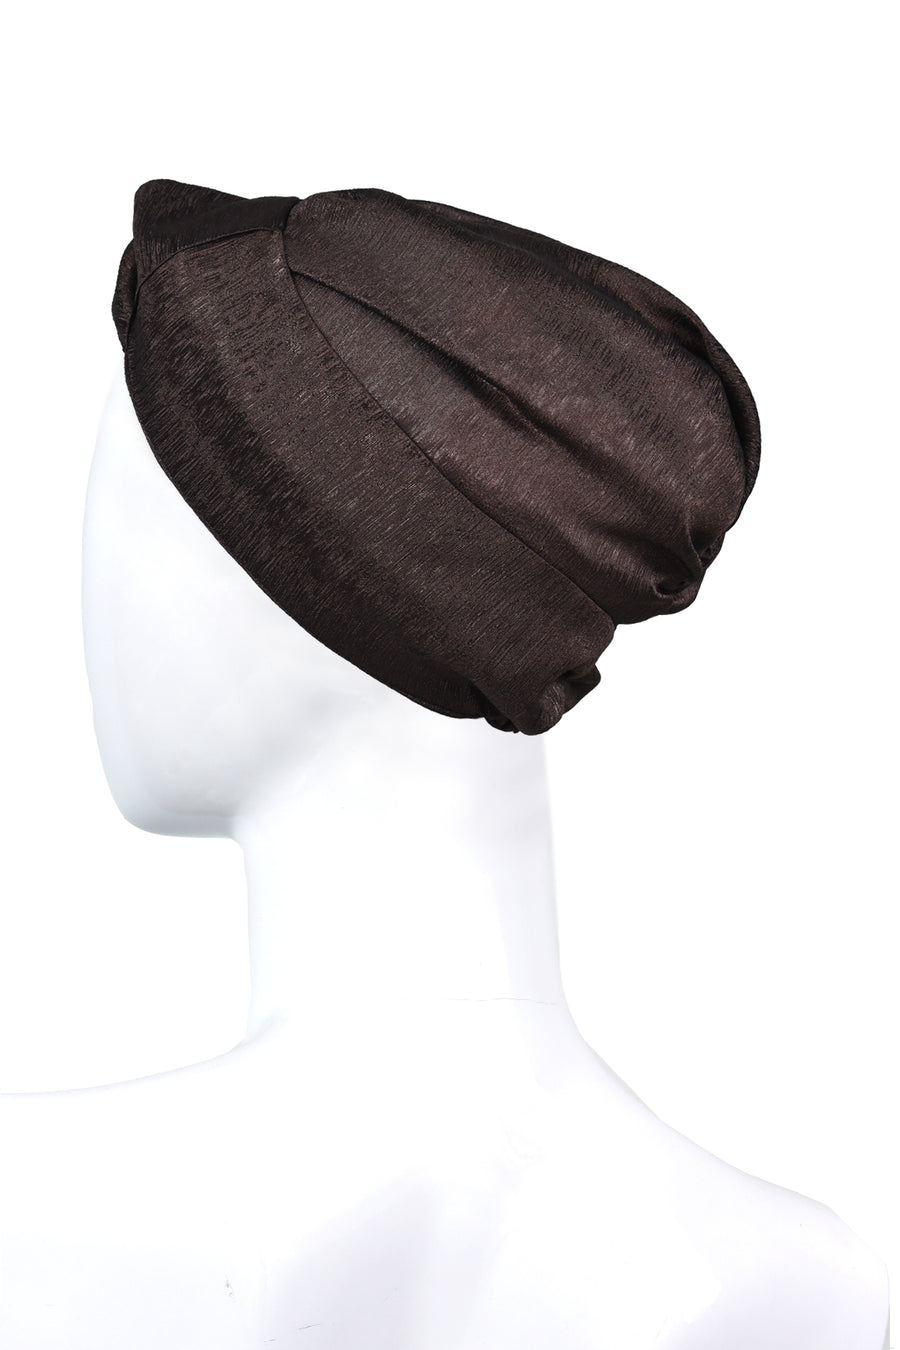 NEW TURBAN DESIGN ! Paris Austerlitz !